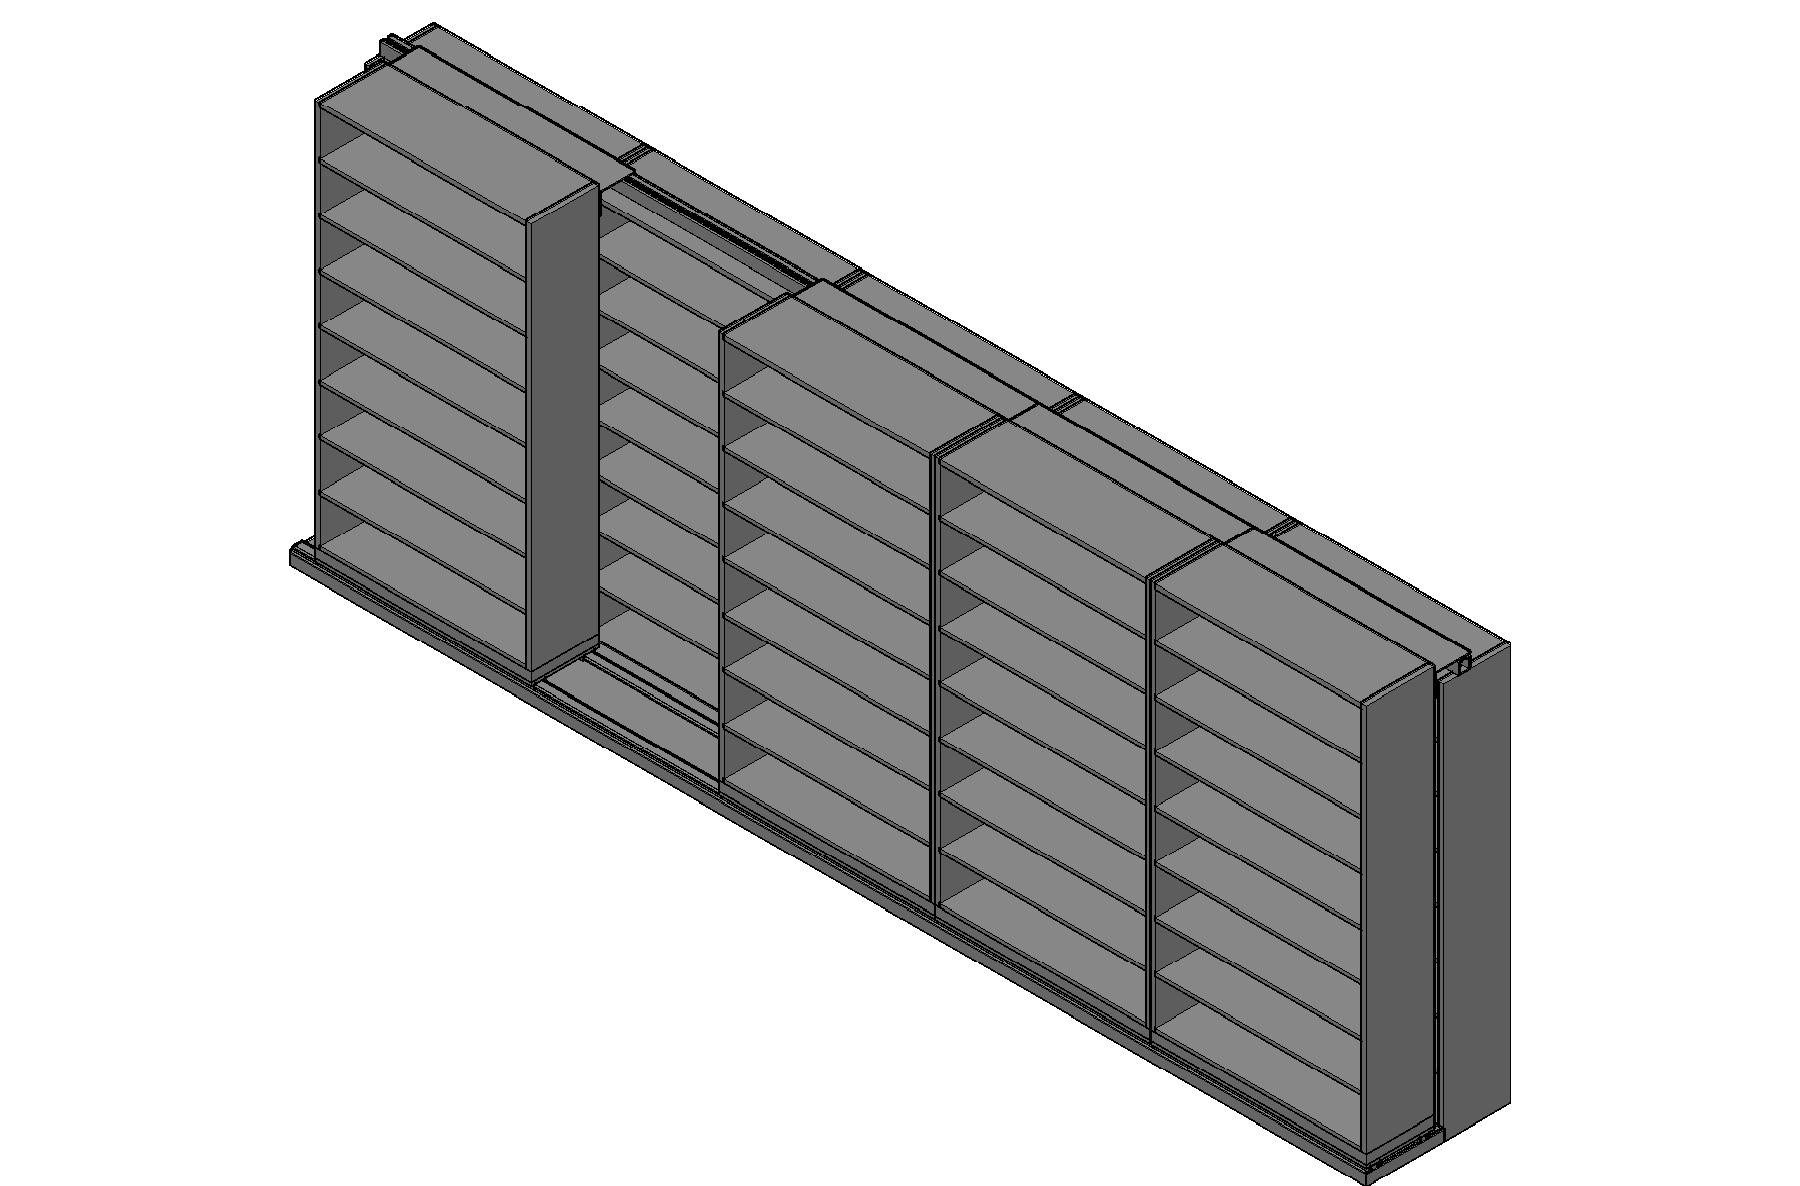 "Legal Size Sliding Shelves - 2 Rows Deep - 8 Levels - (48"" x 15"" Shelves) - 244"" Total Width"